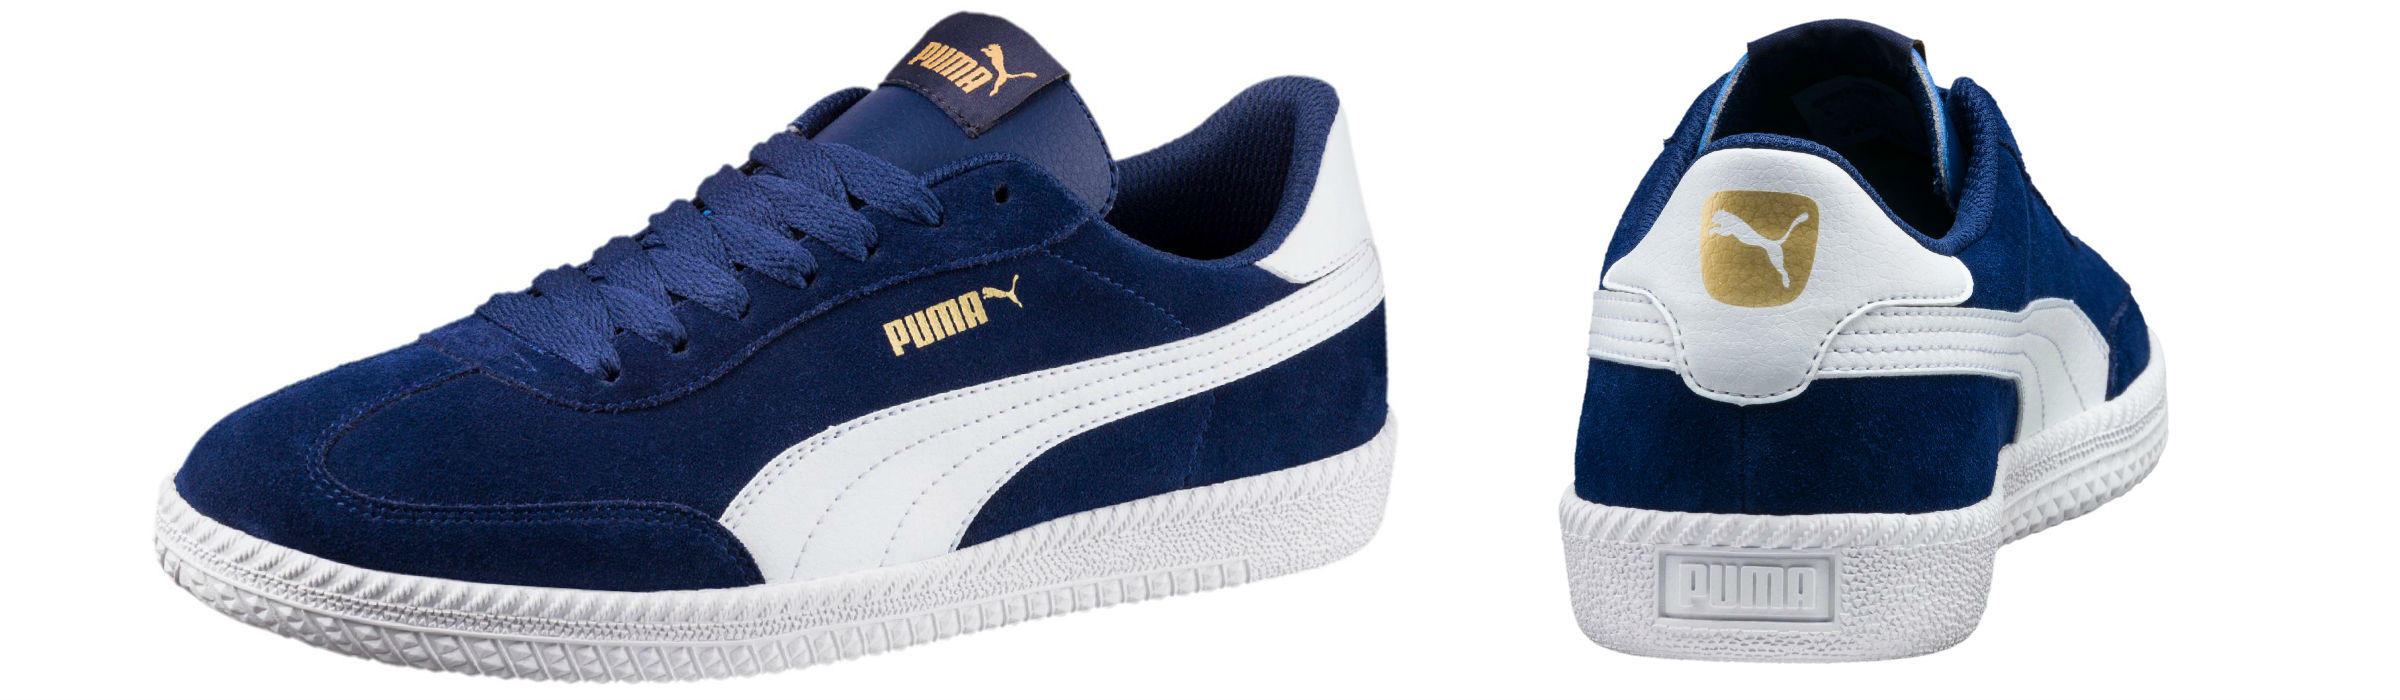 Puma Astro Cup Suede Trainers Blue Depths Puma White Full